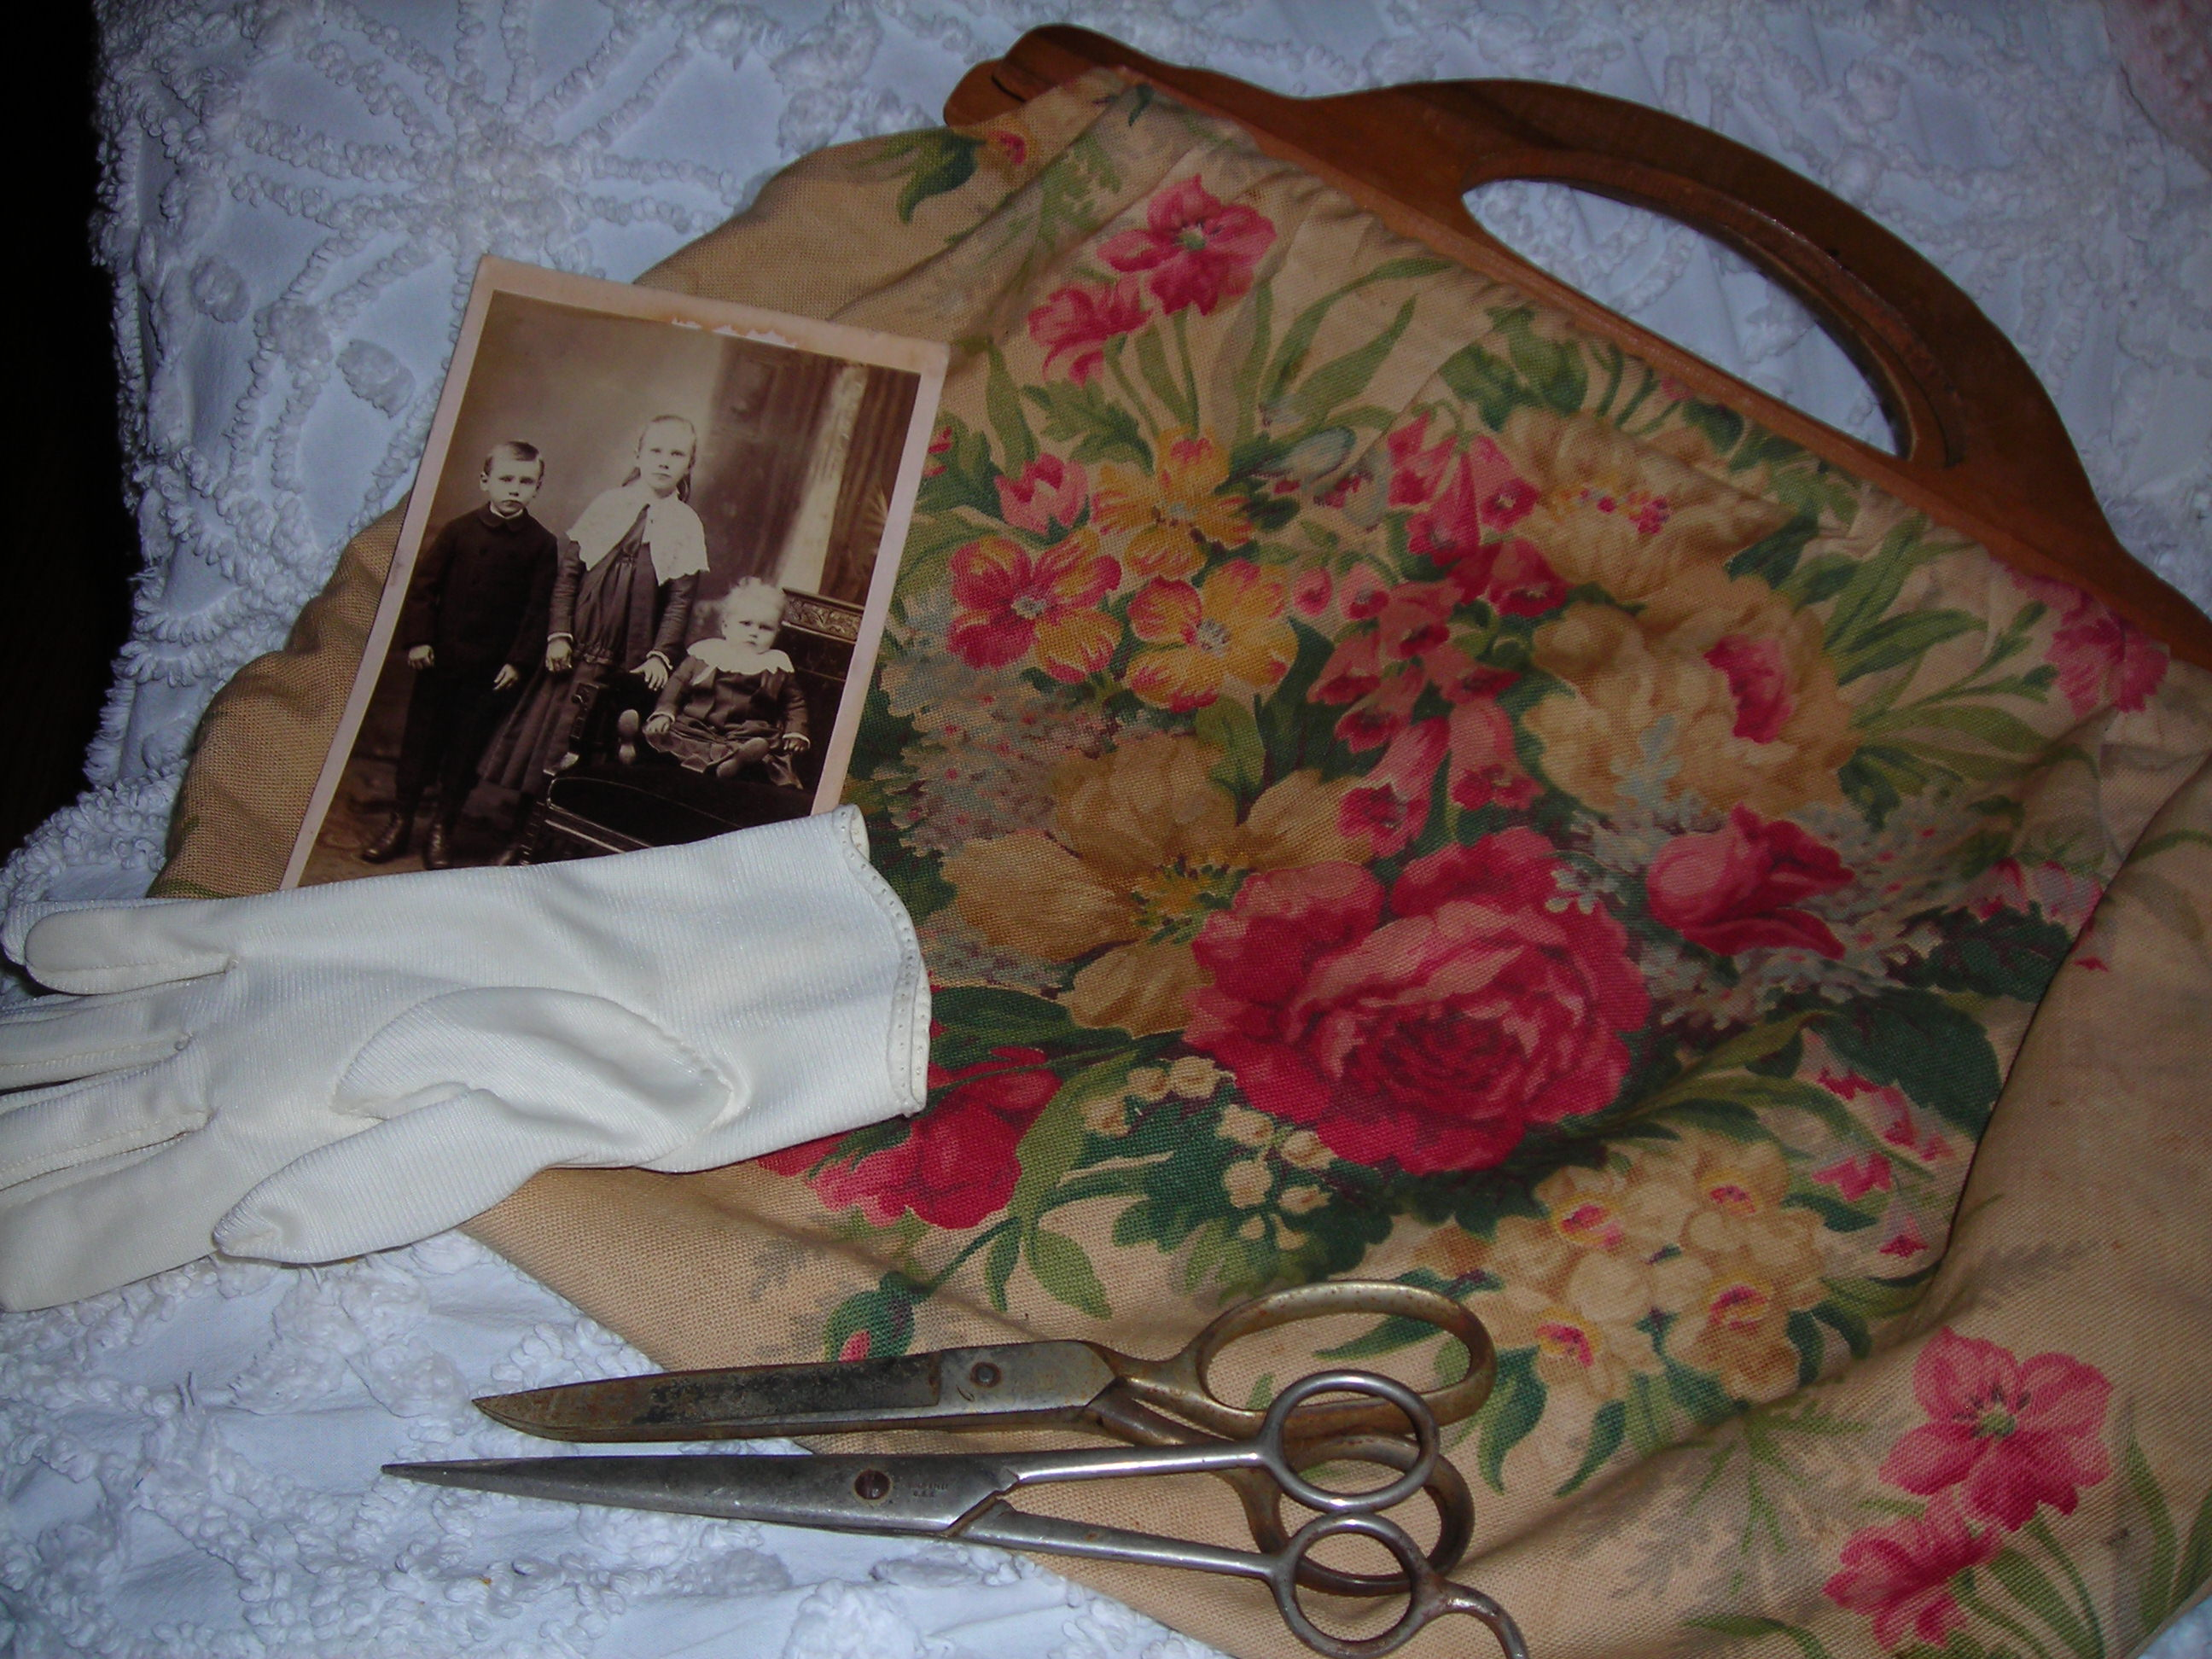 this is a compilation from several sales ... sweet vintage gloves, vintage scissors, old photo and a MARVELOUS vintage tote (purse) covered in roses. ohmygawd. LOVE these!